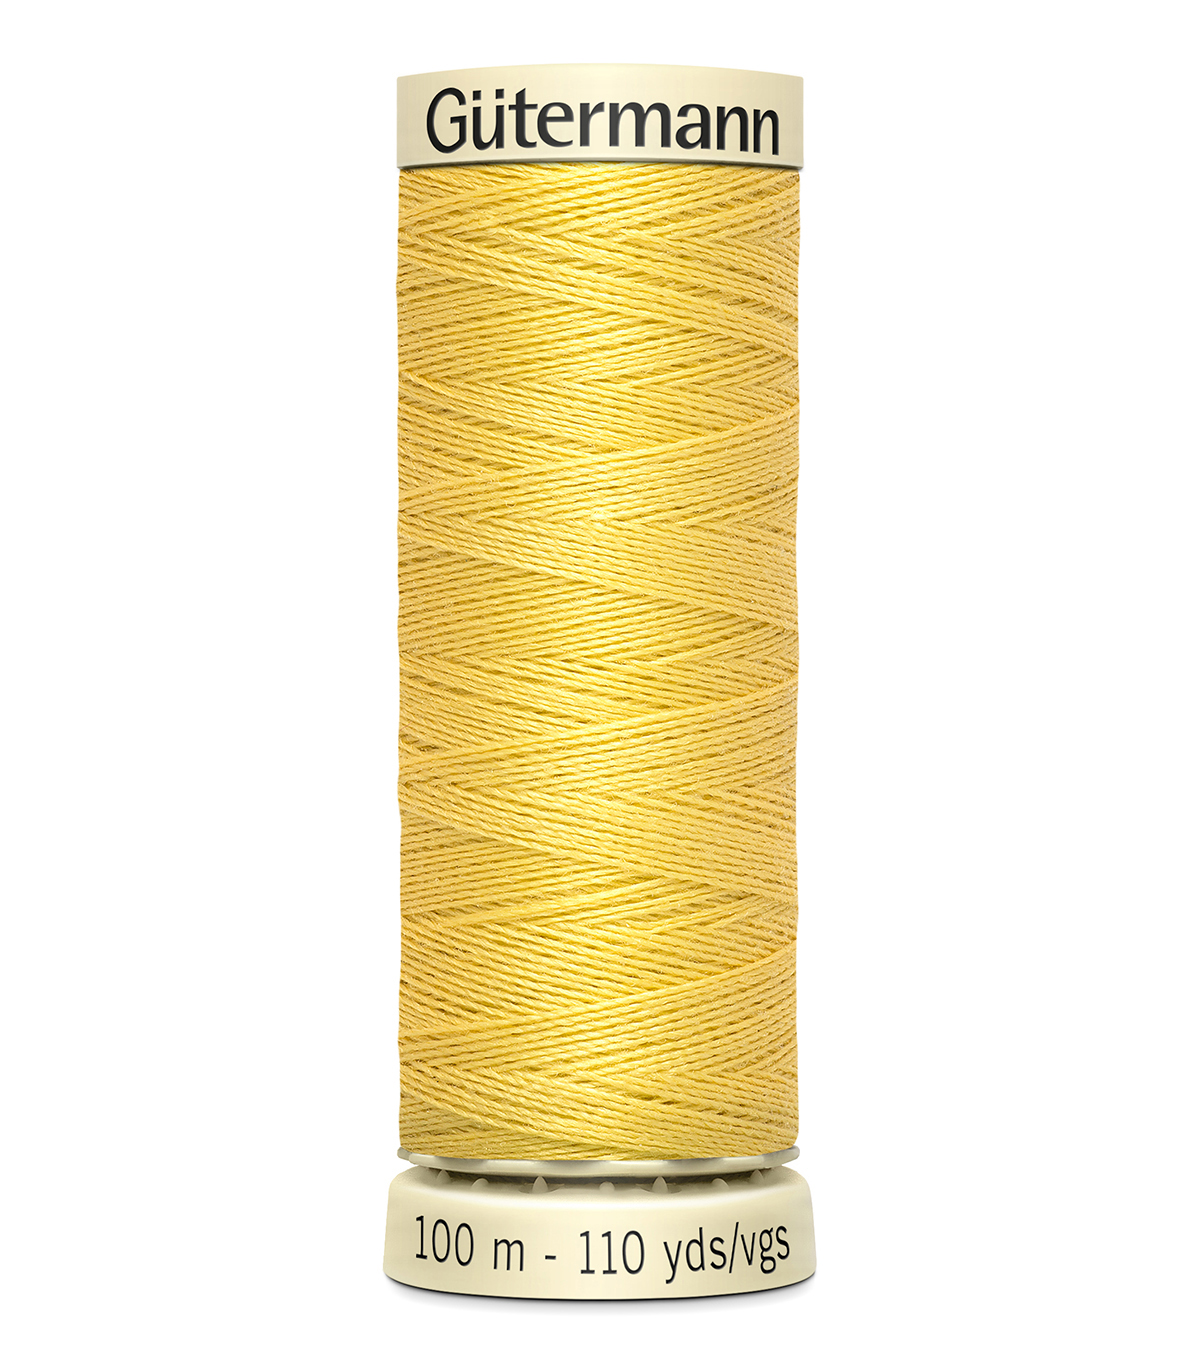 Gutermann Sew All Polyester Thread 110 Yards-Oranges & Yellows , Buttercup